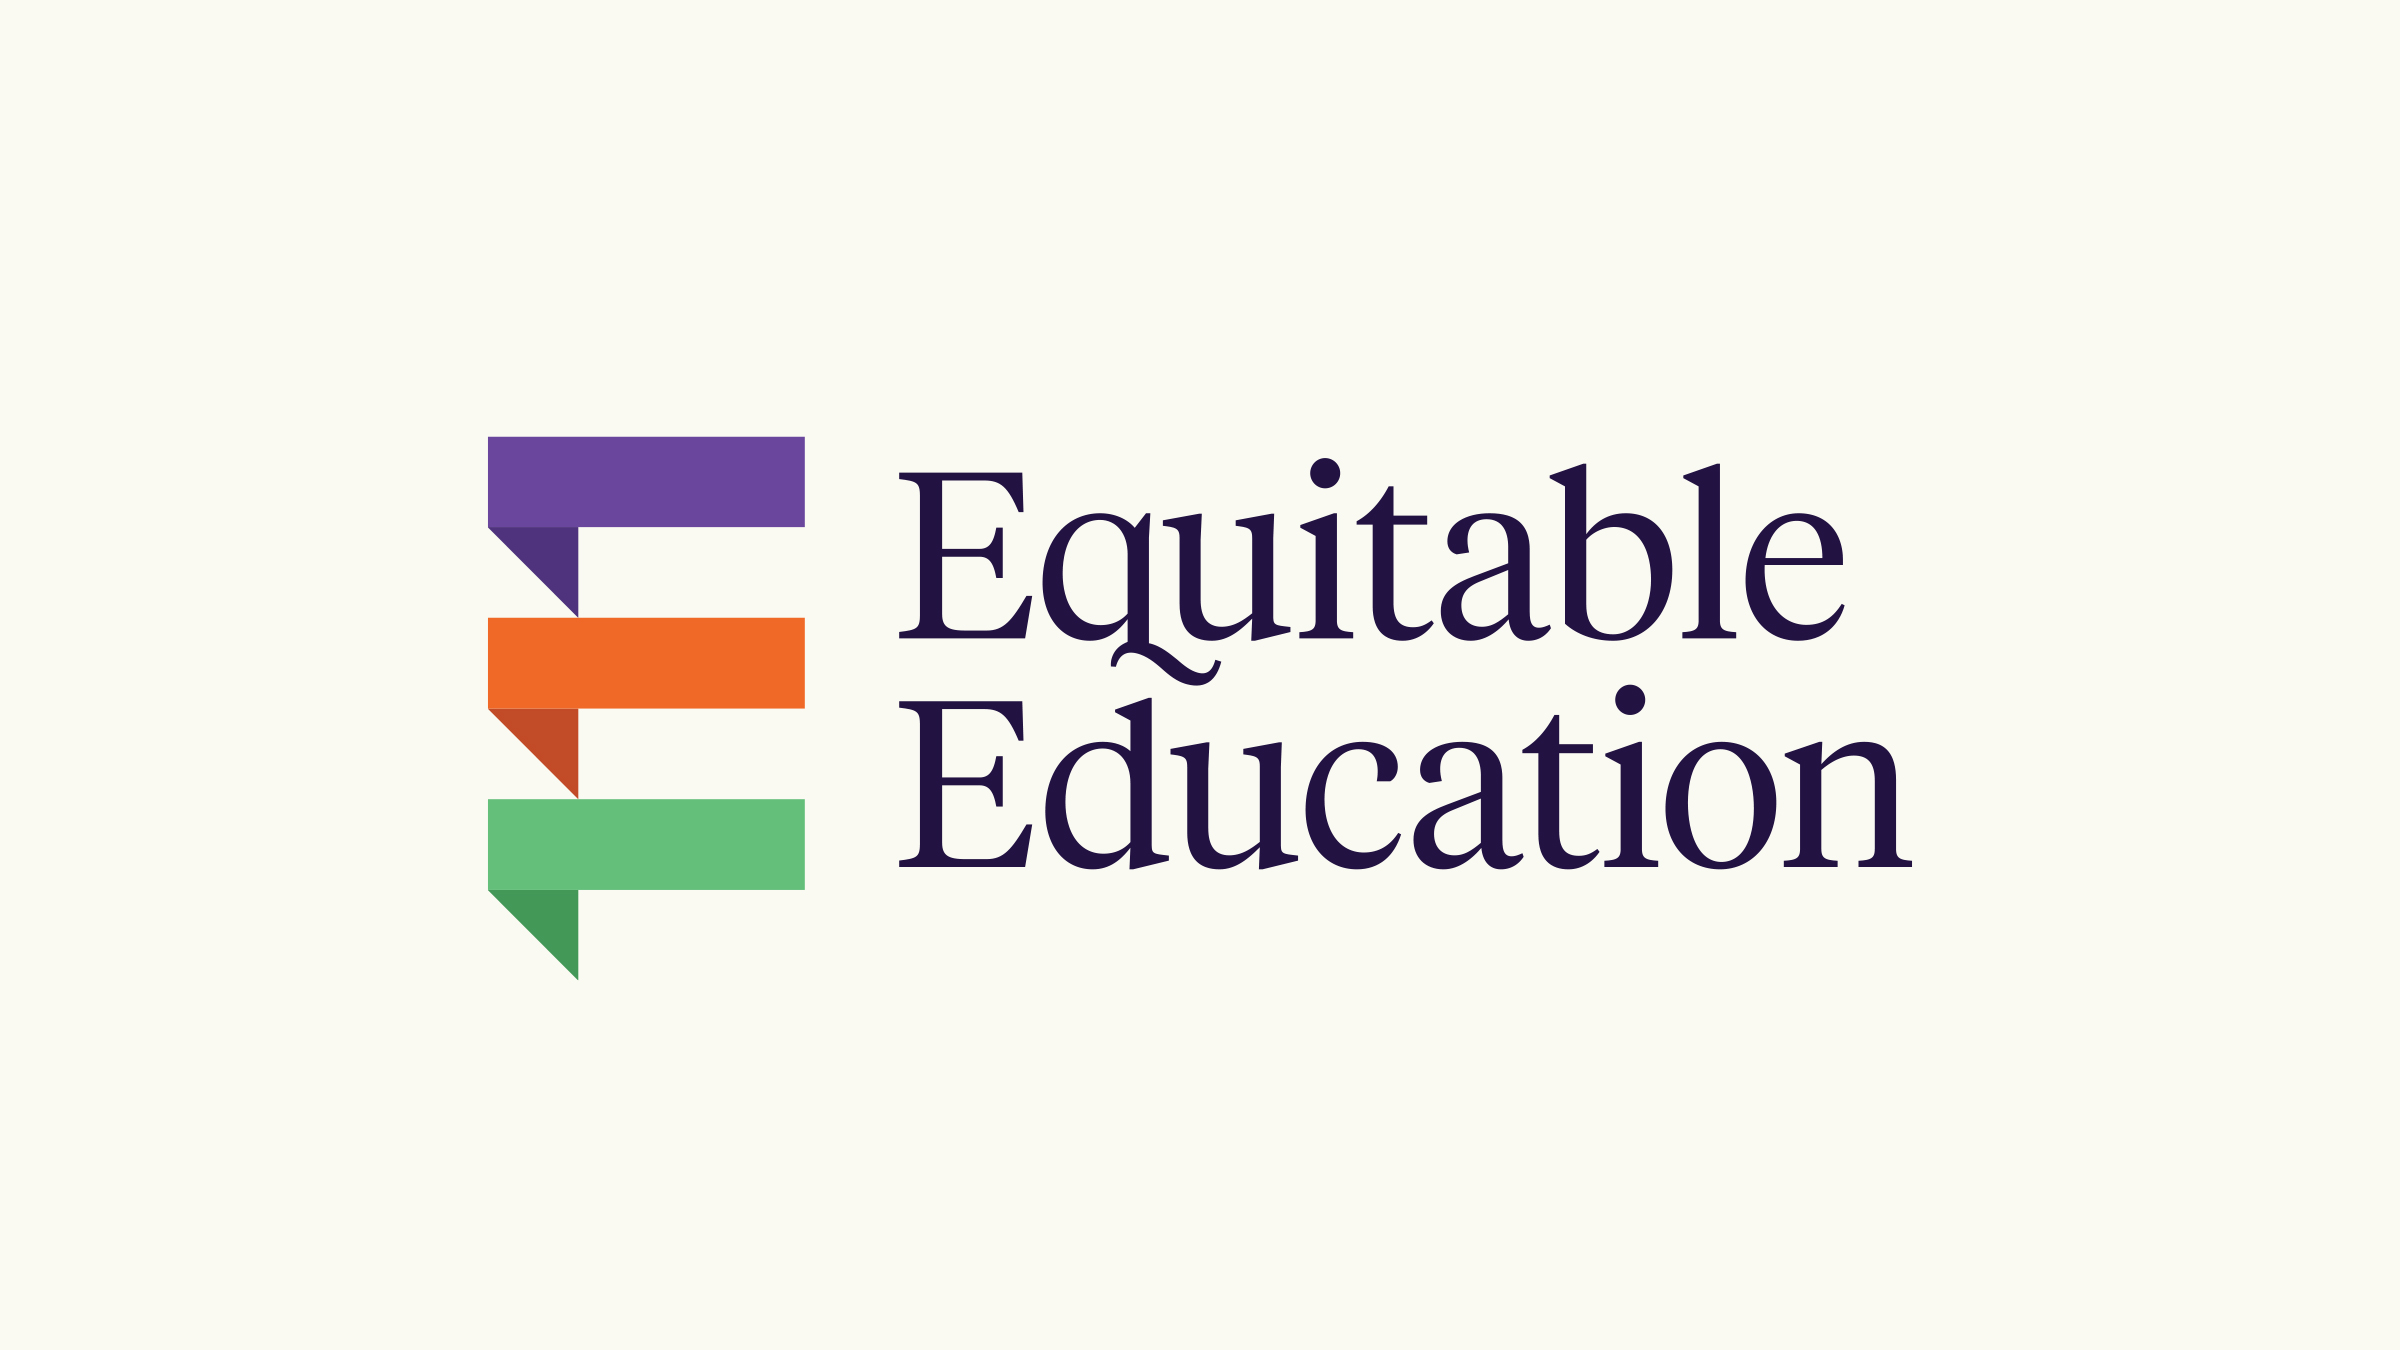 Equitable Education brand logo purple, green, and orange on cream